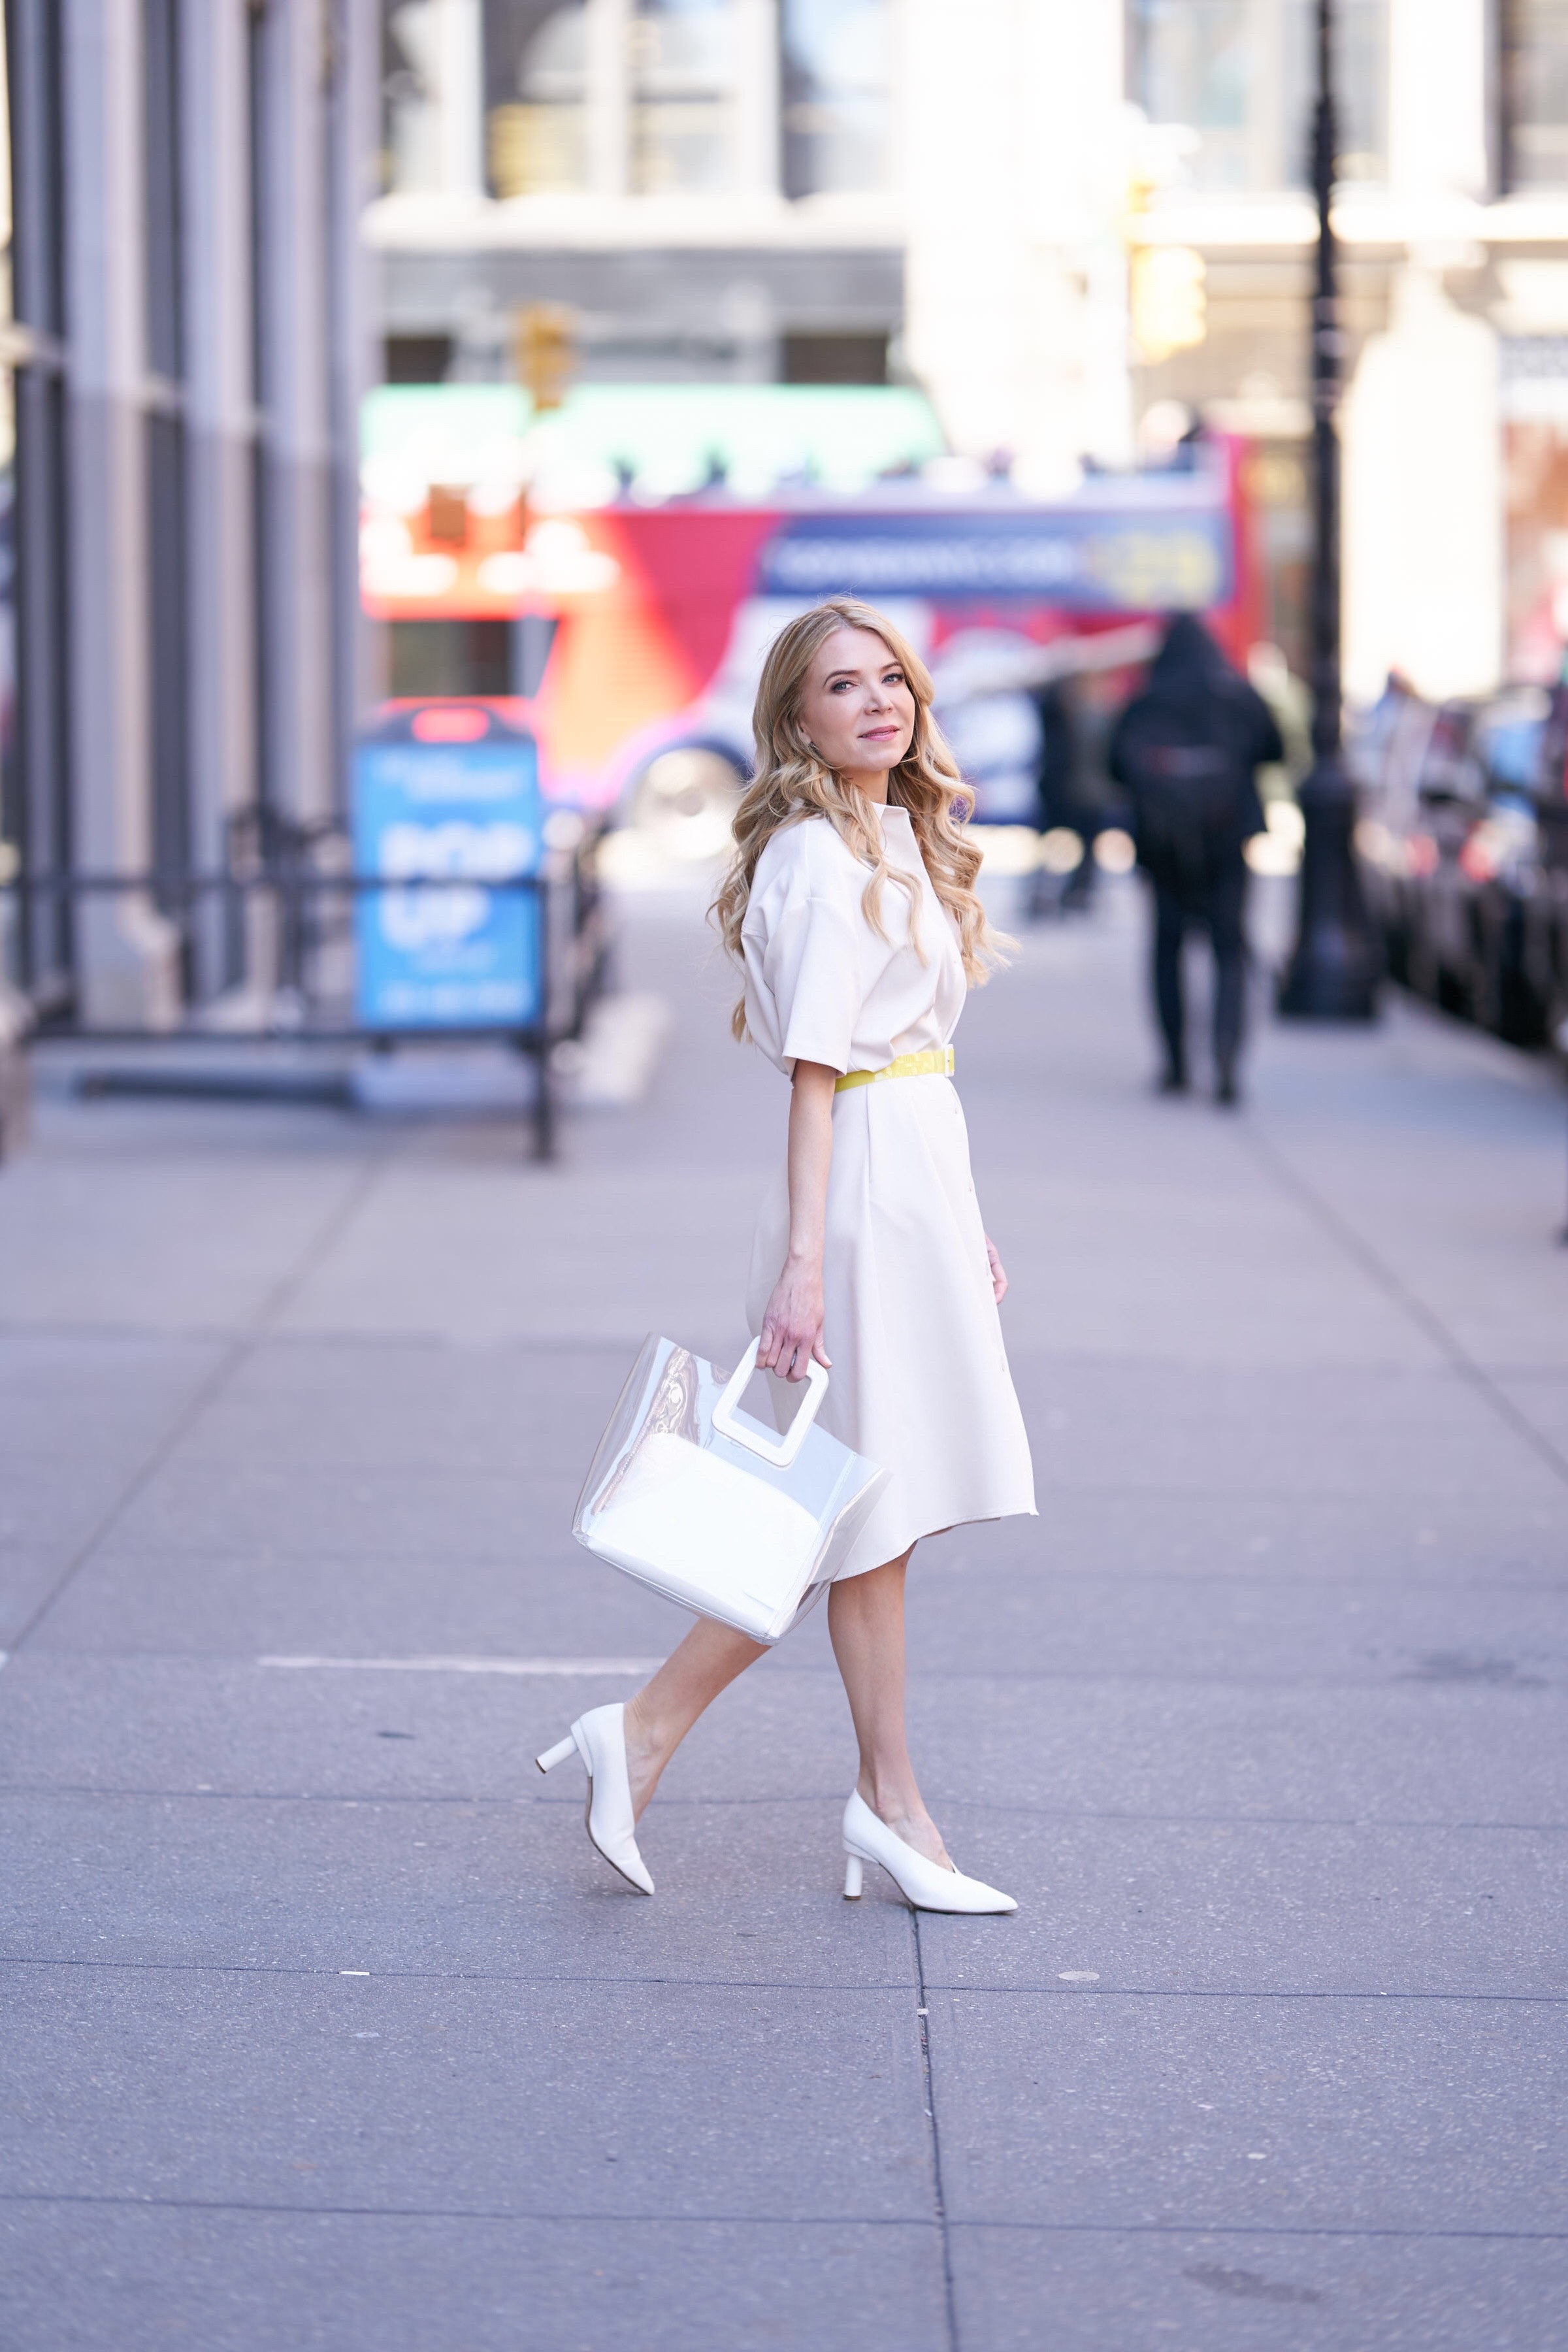 Laura Bonner, About the Outfits, www.abouttheoutfits.com, Target style, Staud bag, Tibi, Target